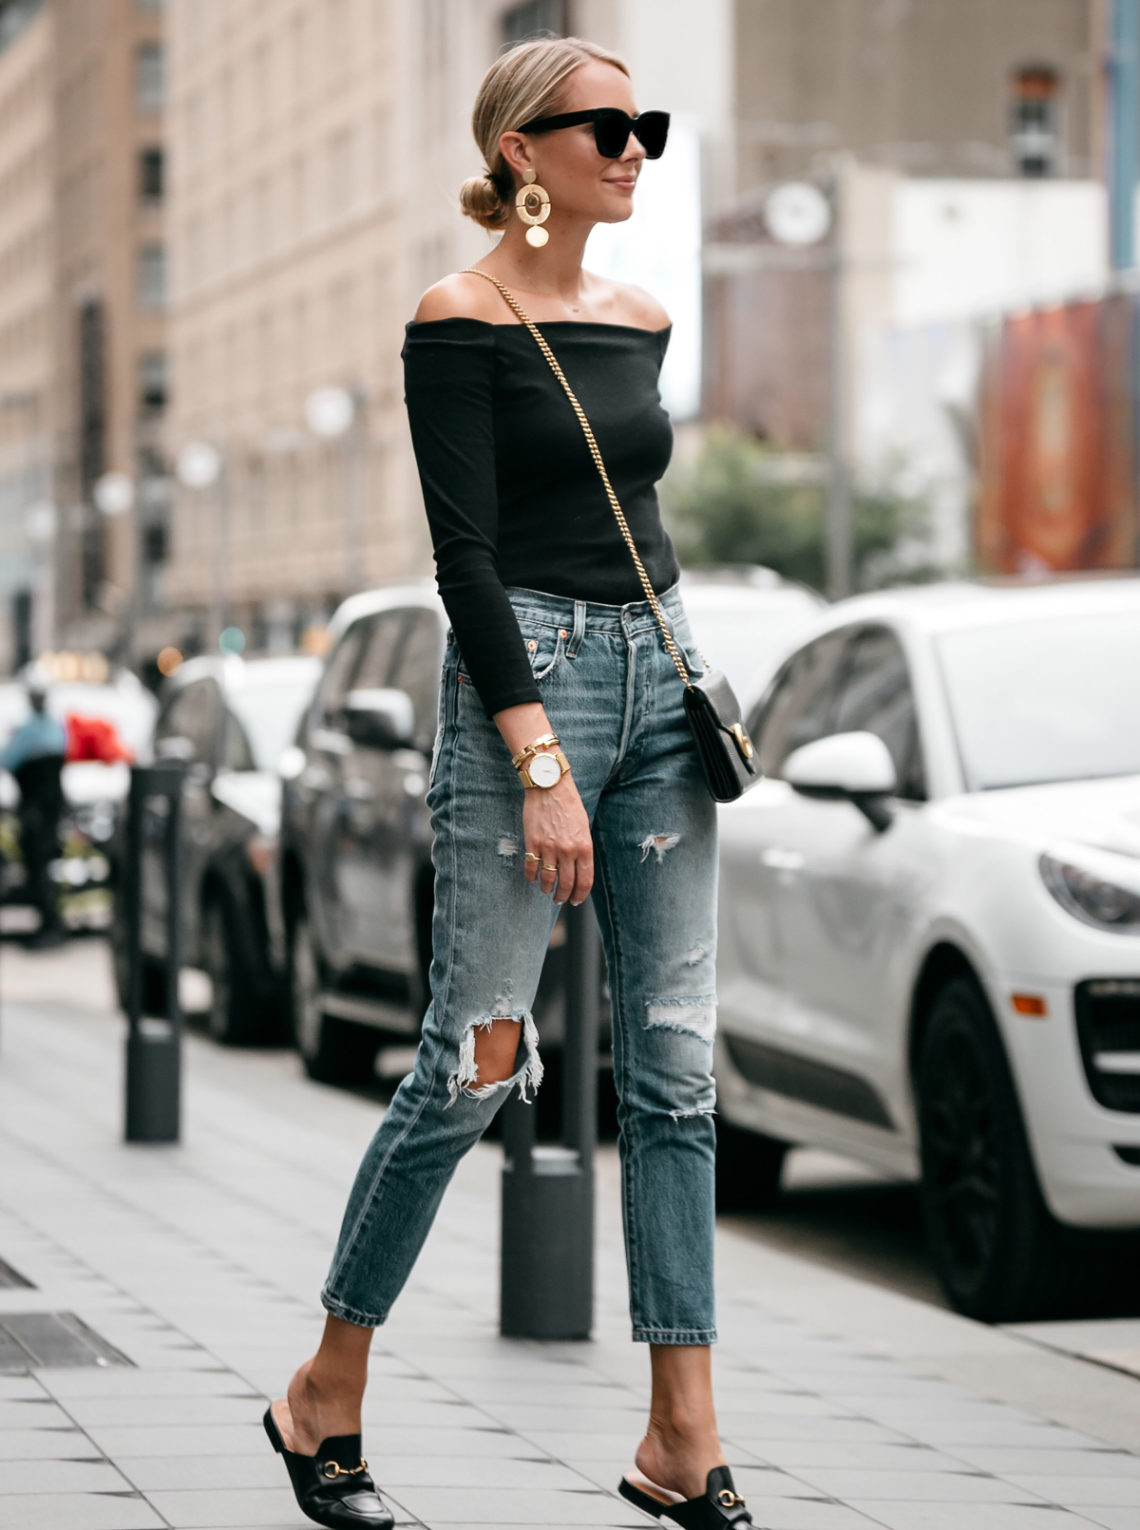 Blonde Woman Wearing Jcrew black off the shoulder top Levis Denim Ripped Jeans Gucci Marmont Handbag Gucci Princetown Loafer Mules Fashion Jackson Dallas Blogger Fashion Blogger Street Style